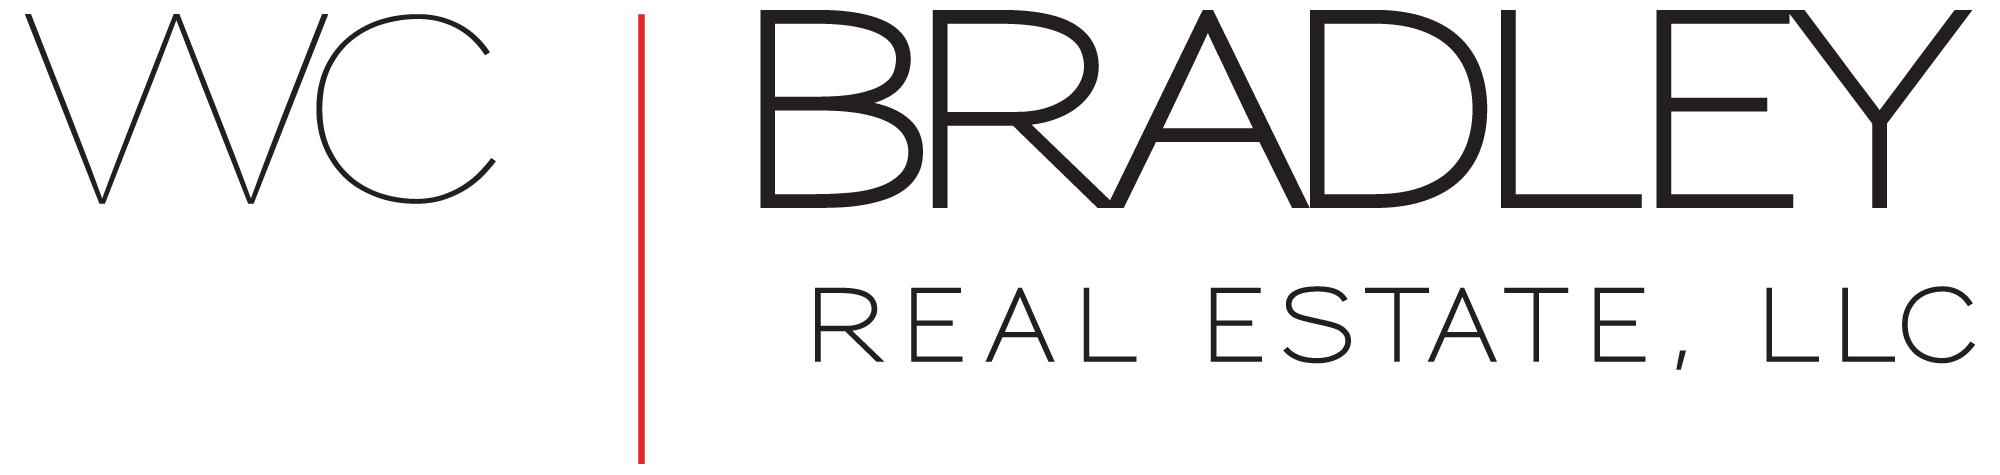 W.C. Bradley Real Estate